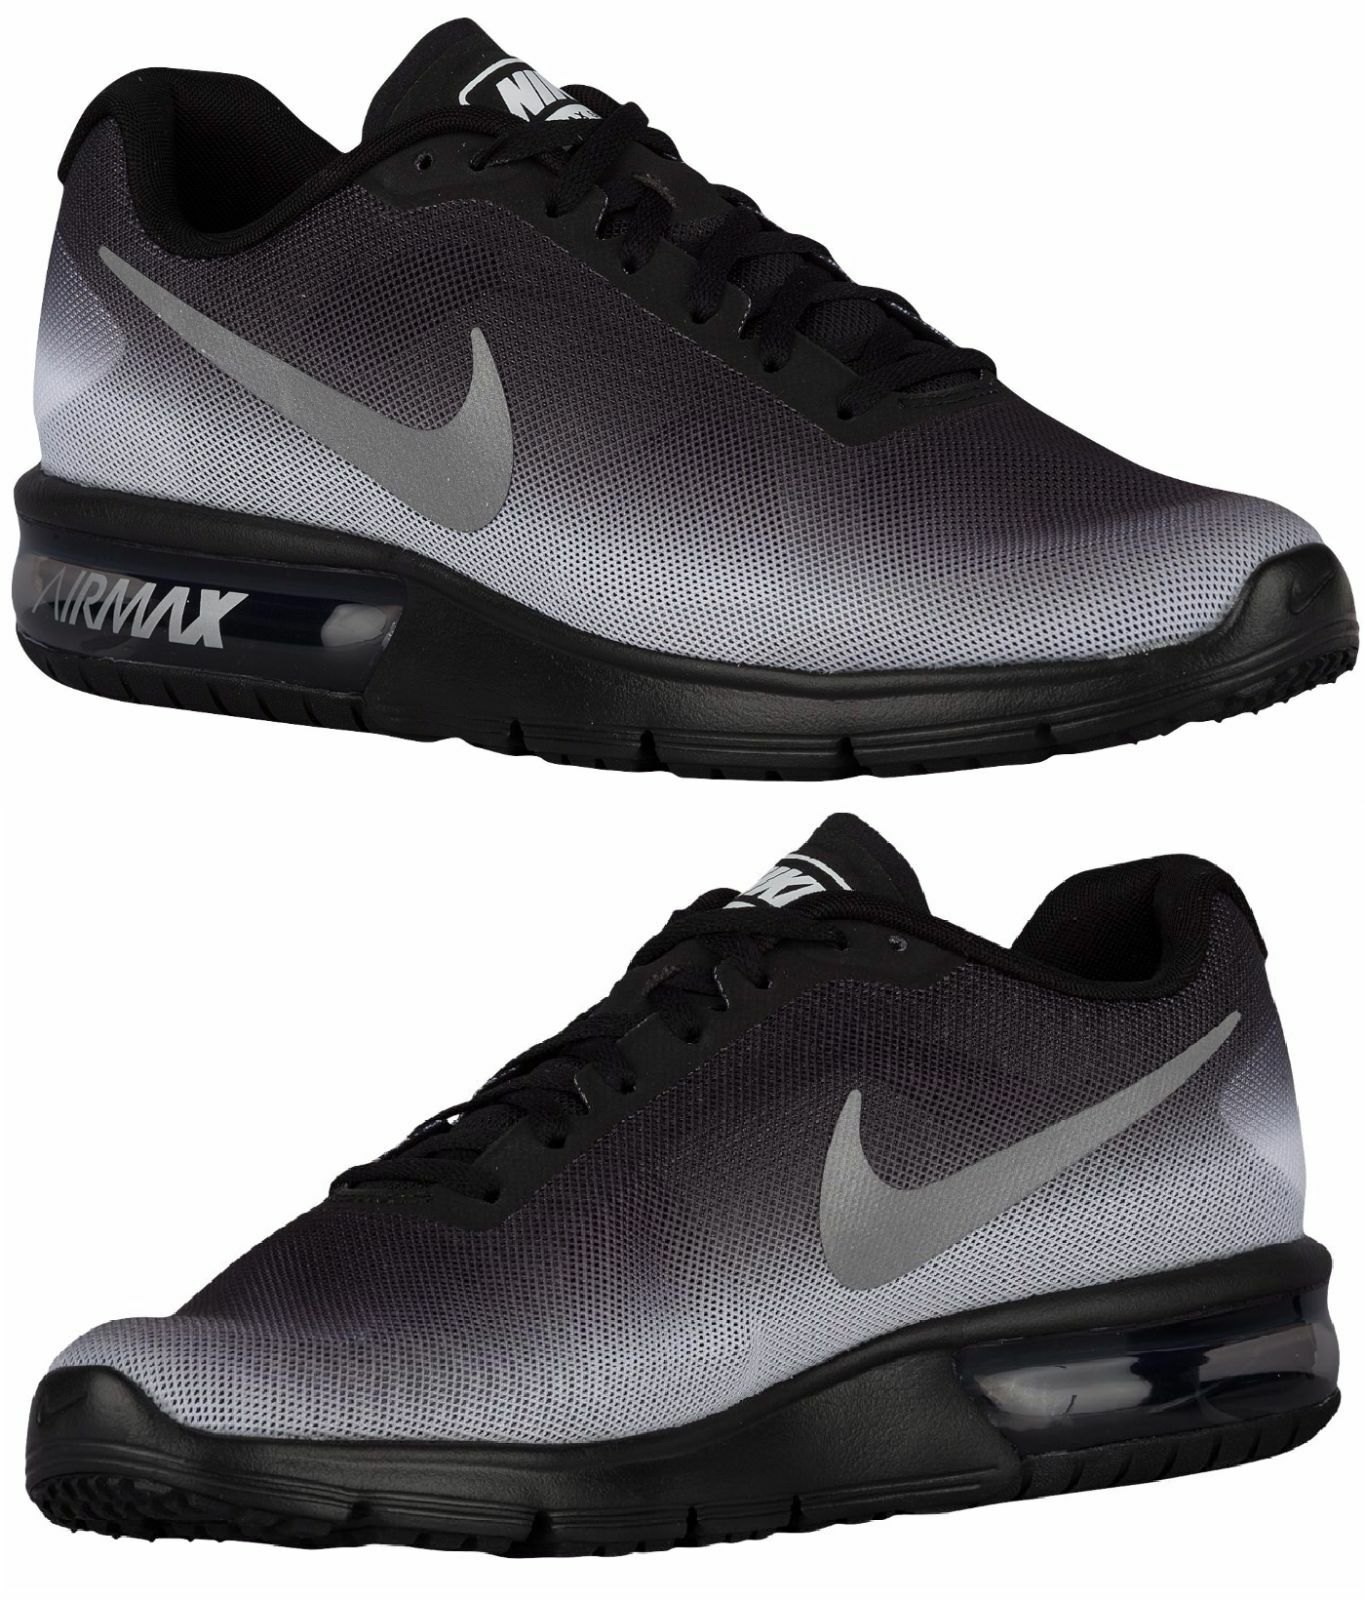 NIKE AIR MAX SEQUENT MEN's M RUNNING BLACK - WHITE - METALLIC SILVER AUTHENTIC